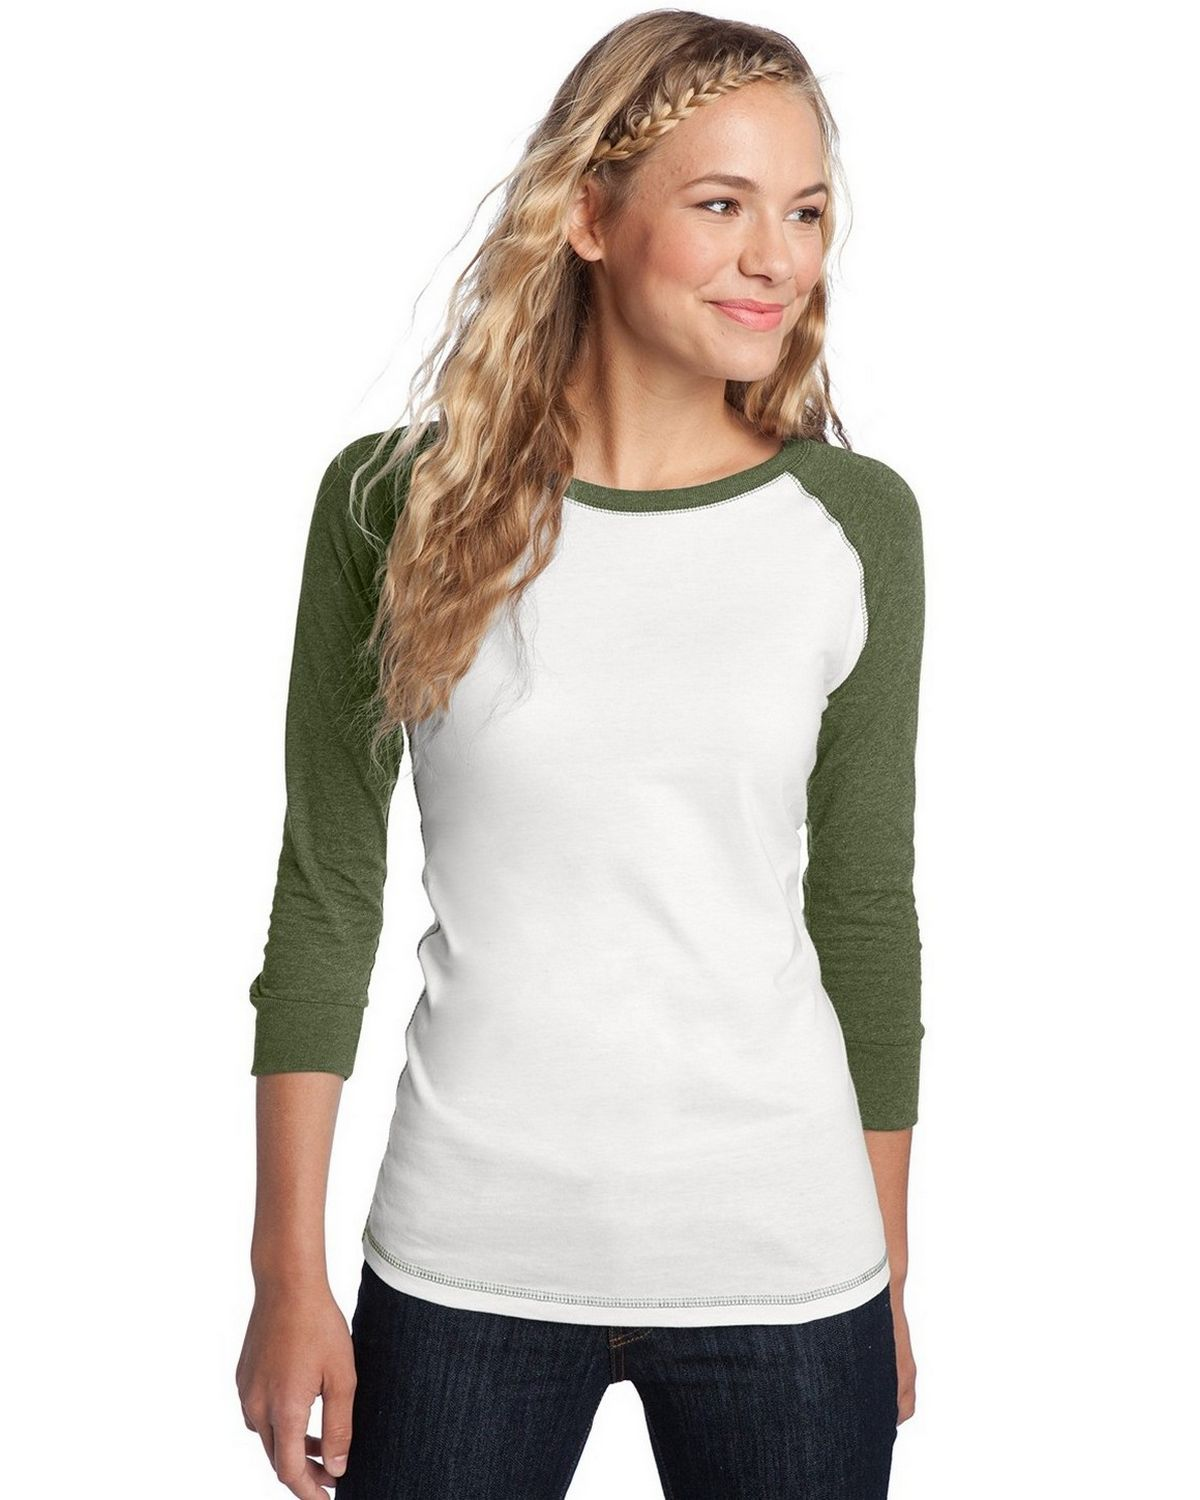 District DT226 Juniors Perfect Weight Raglan Tee - White/Heathered Mocha Brown - XS DT226